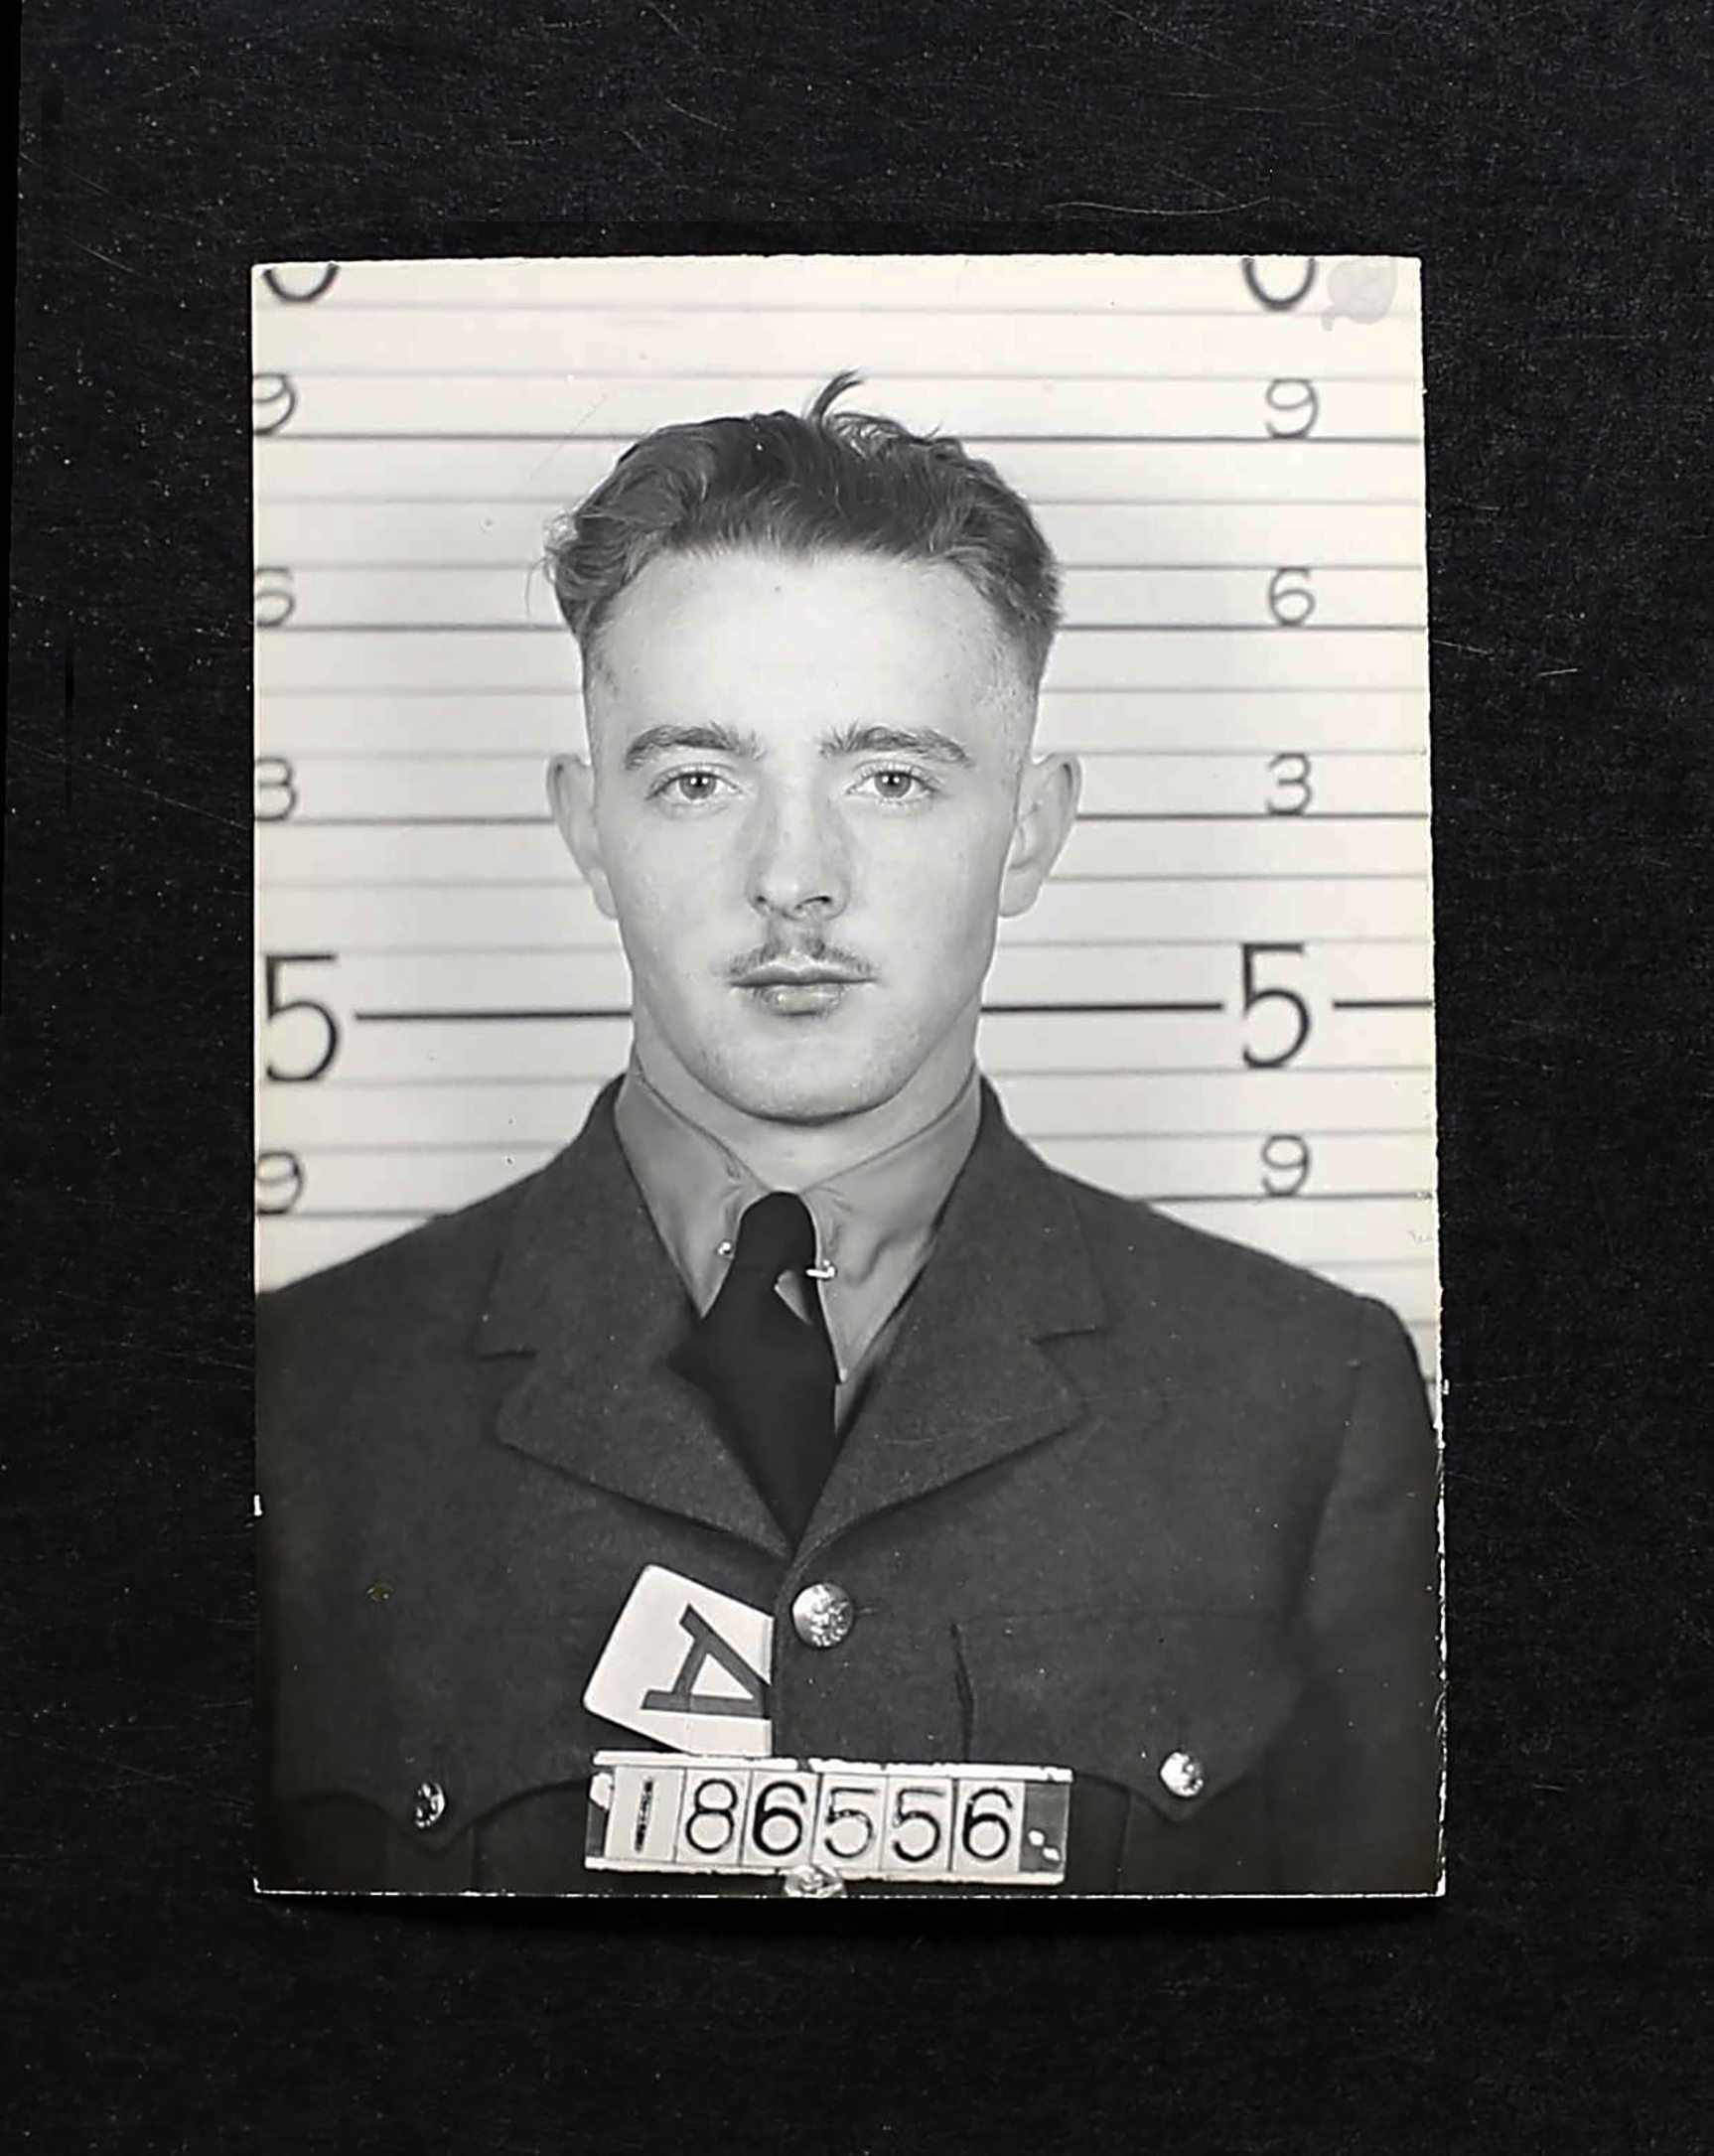 Sergeant Ronald Zimmer's military photograph shows his height, service number, blood type, and cowlick. The youngest of his crew, Sergeant Zimmer had celebrated his 20th birthday just three weeks and two days before he and his crew were killed when their Lancaster bomber was shot down near the Holland-Germany border on January 2, 1944. Today, like many Saskatchewanians who died in the war, Sergeant Zimmer's service to his country is honoured and remembered by way of a Geo Memorial: Geological feature Zimmer Island, located in eastern Lac La Ronge, one of the largest lakes in Saskatchewan, bears his name. PHOTO: Courtesy of Sharon Zimmer